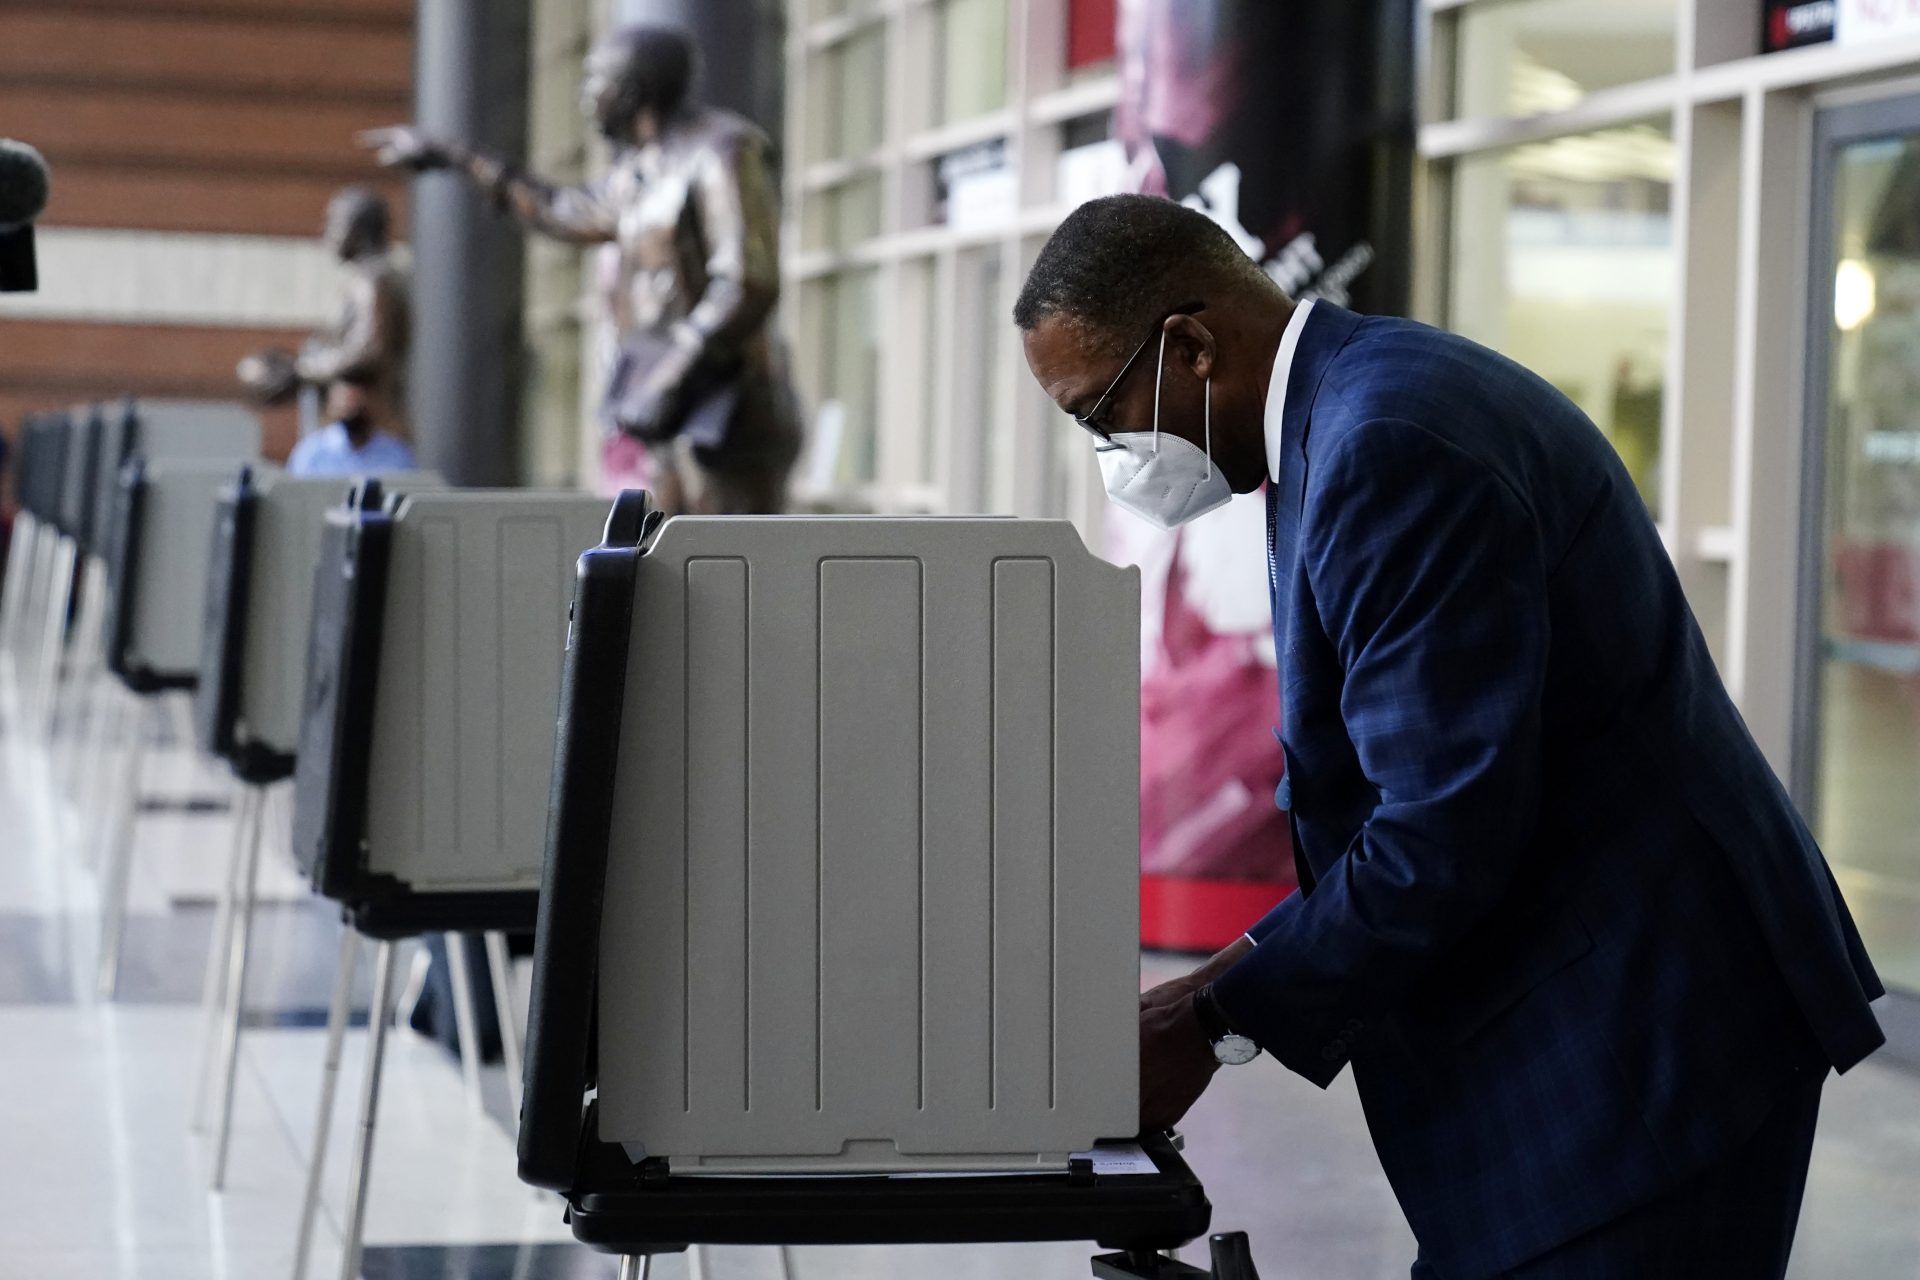 Philadelphia City Council President Darrell L. Clarke fills out his ballot at the opening of a satellite election office at Temple University's Liacouras Center, Tuesday, Sept. 29, 2020, in Philadelphia. P